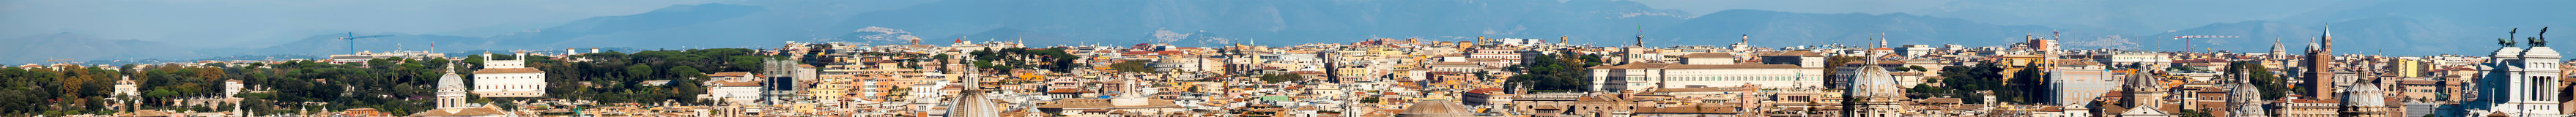 Rome Extra Panoramic View Royalty Free Stock Images